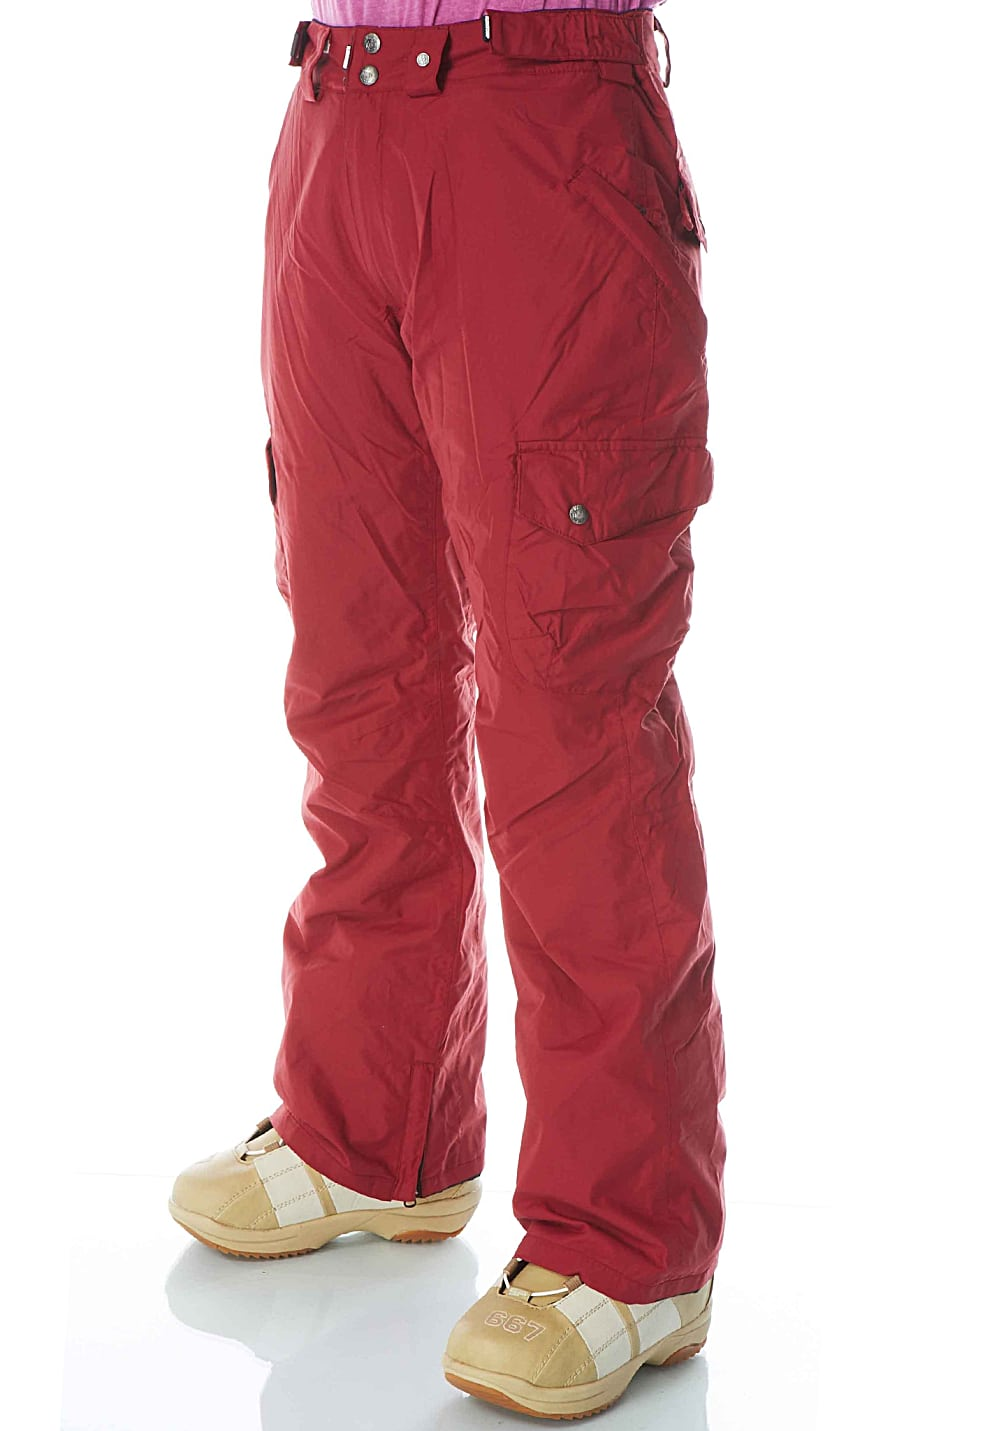 Light Swing - Snowboardhose für Damen - Rot - XS